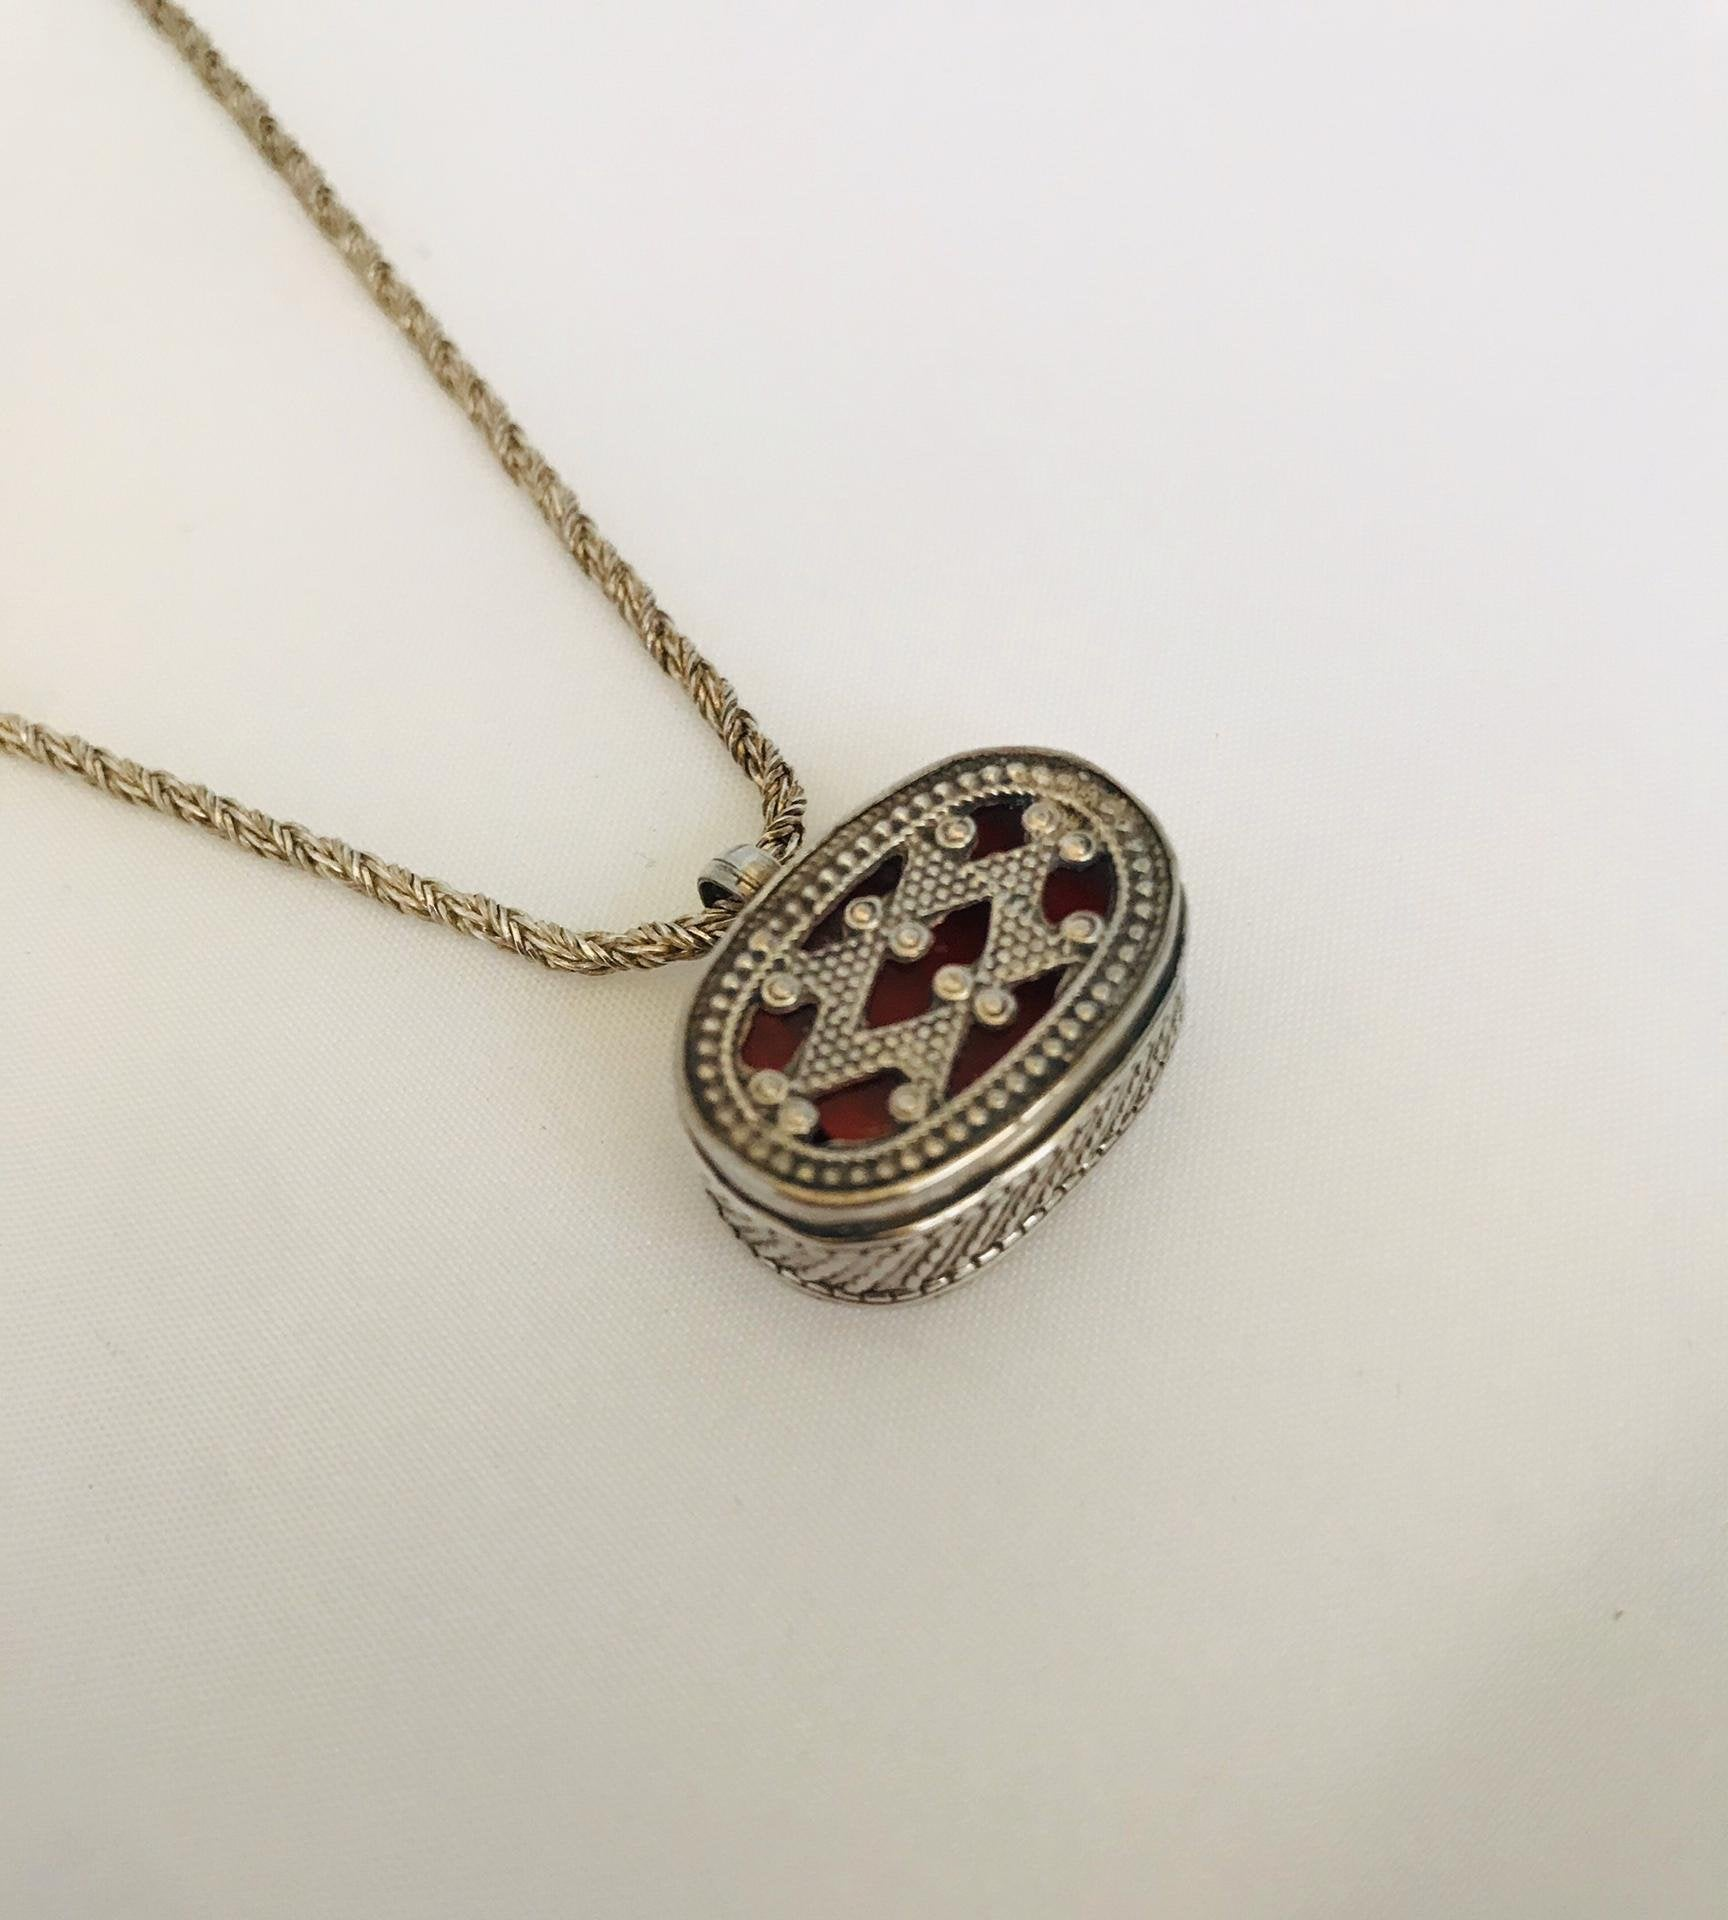 Wouters & Hendrix - silver vintage pendant necklace